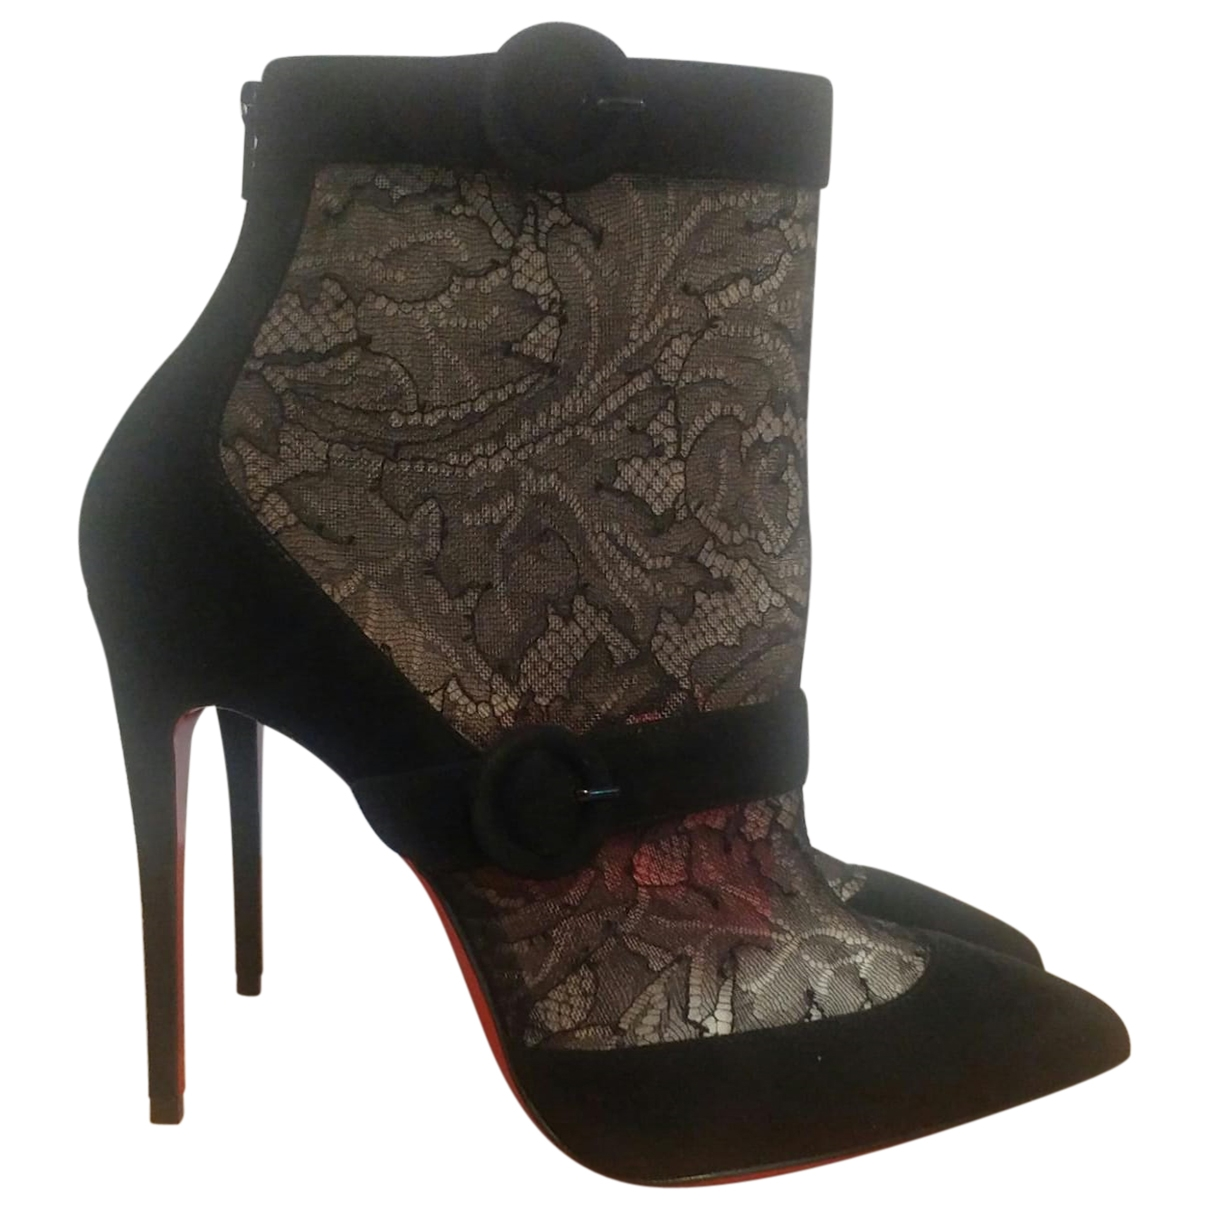 Christian Louboutin So Kate Booty Black Suede Ankle boots for Women 37 EU